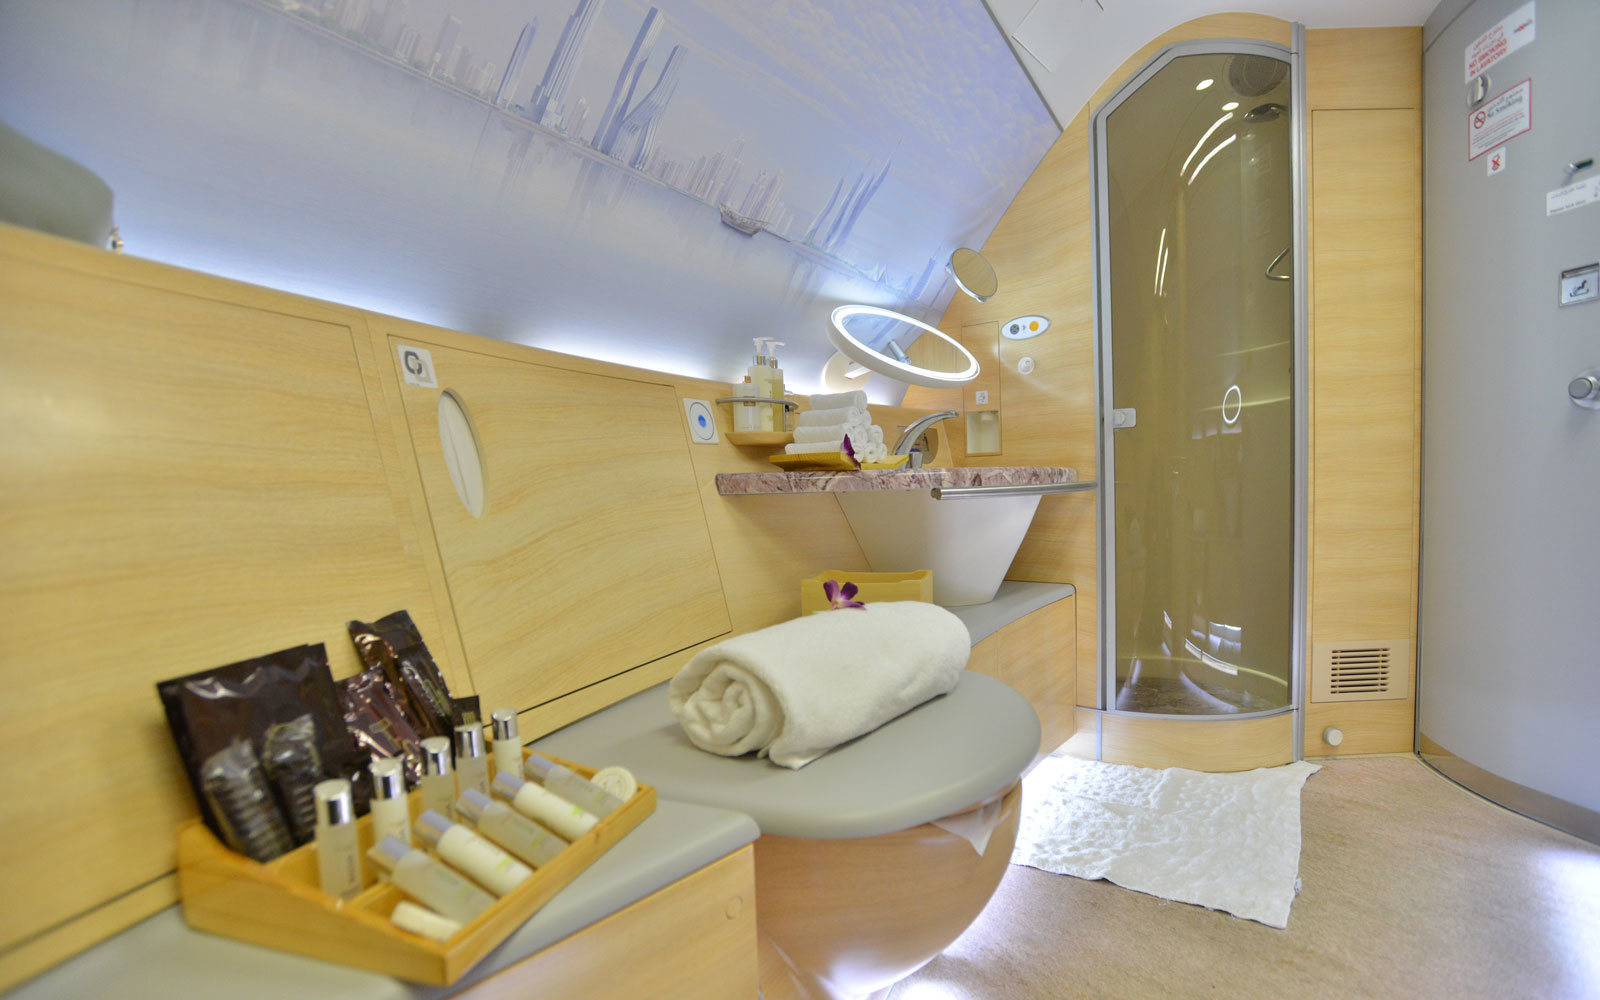 Inside the Airbus A380, the Biggest Passenger Plane in the World | Travel + Leisure